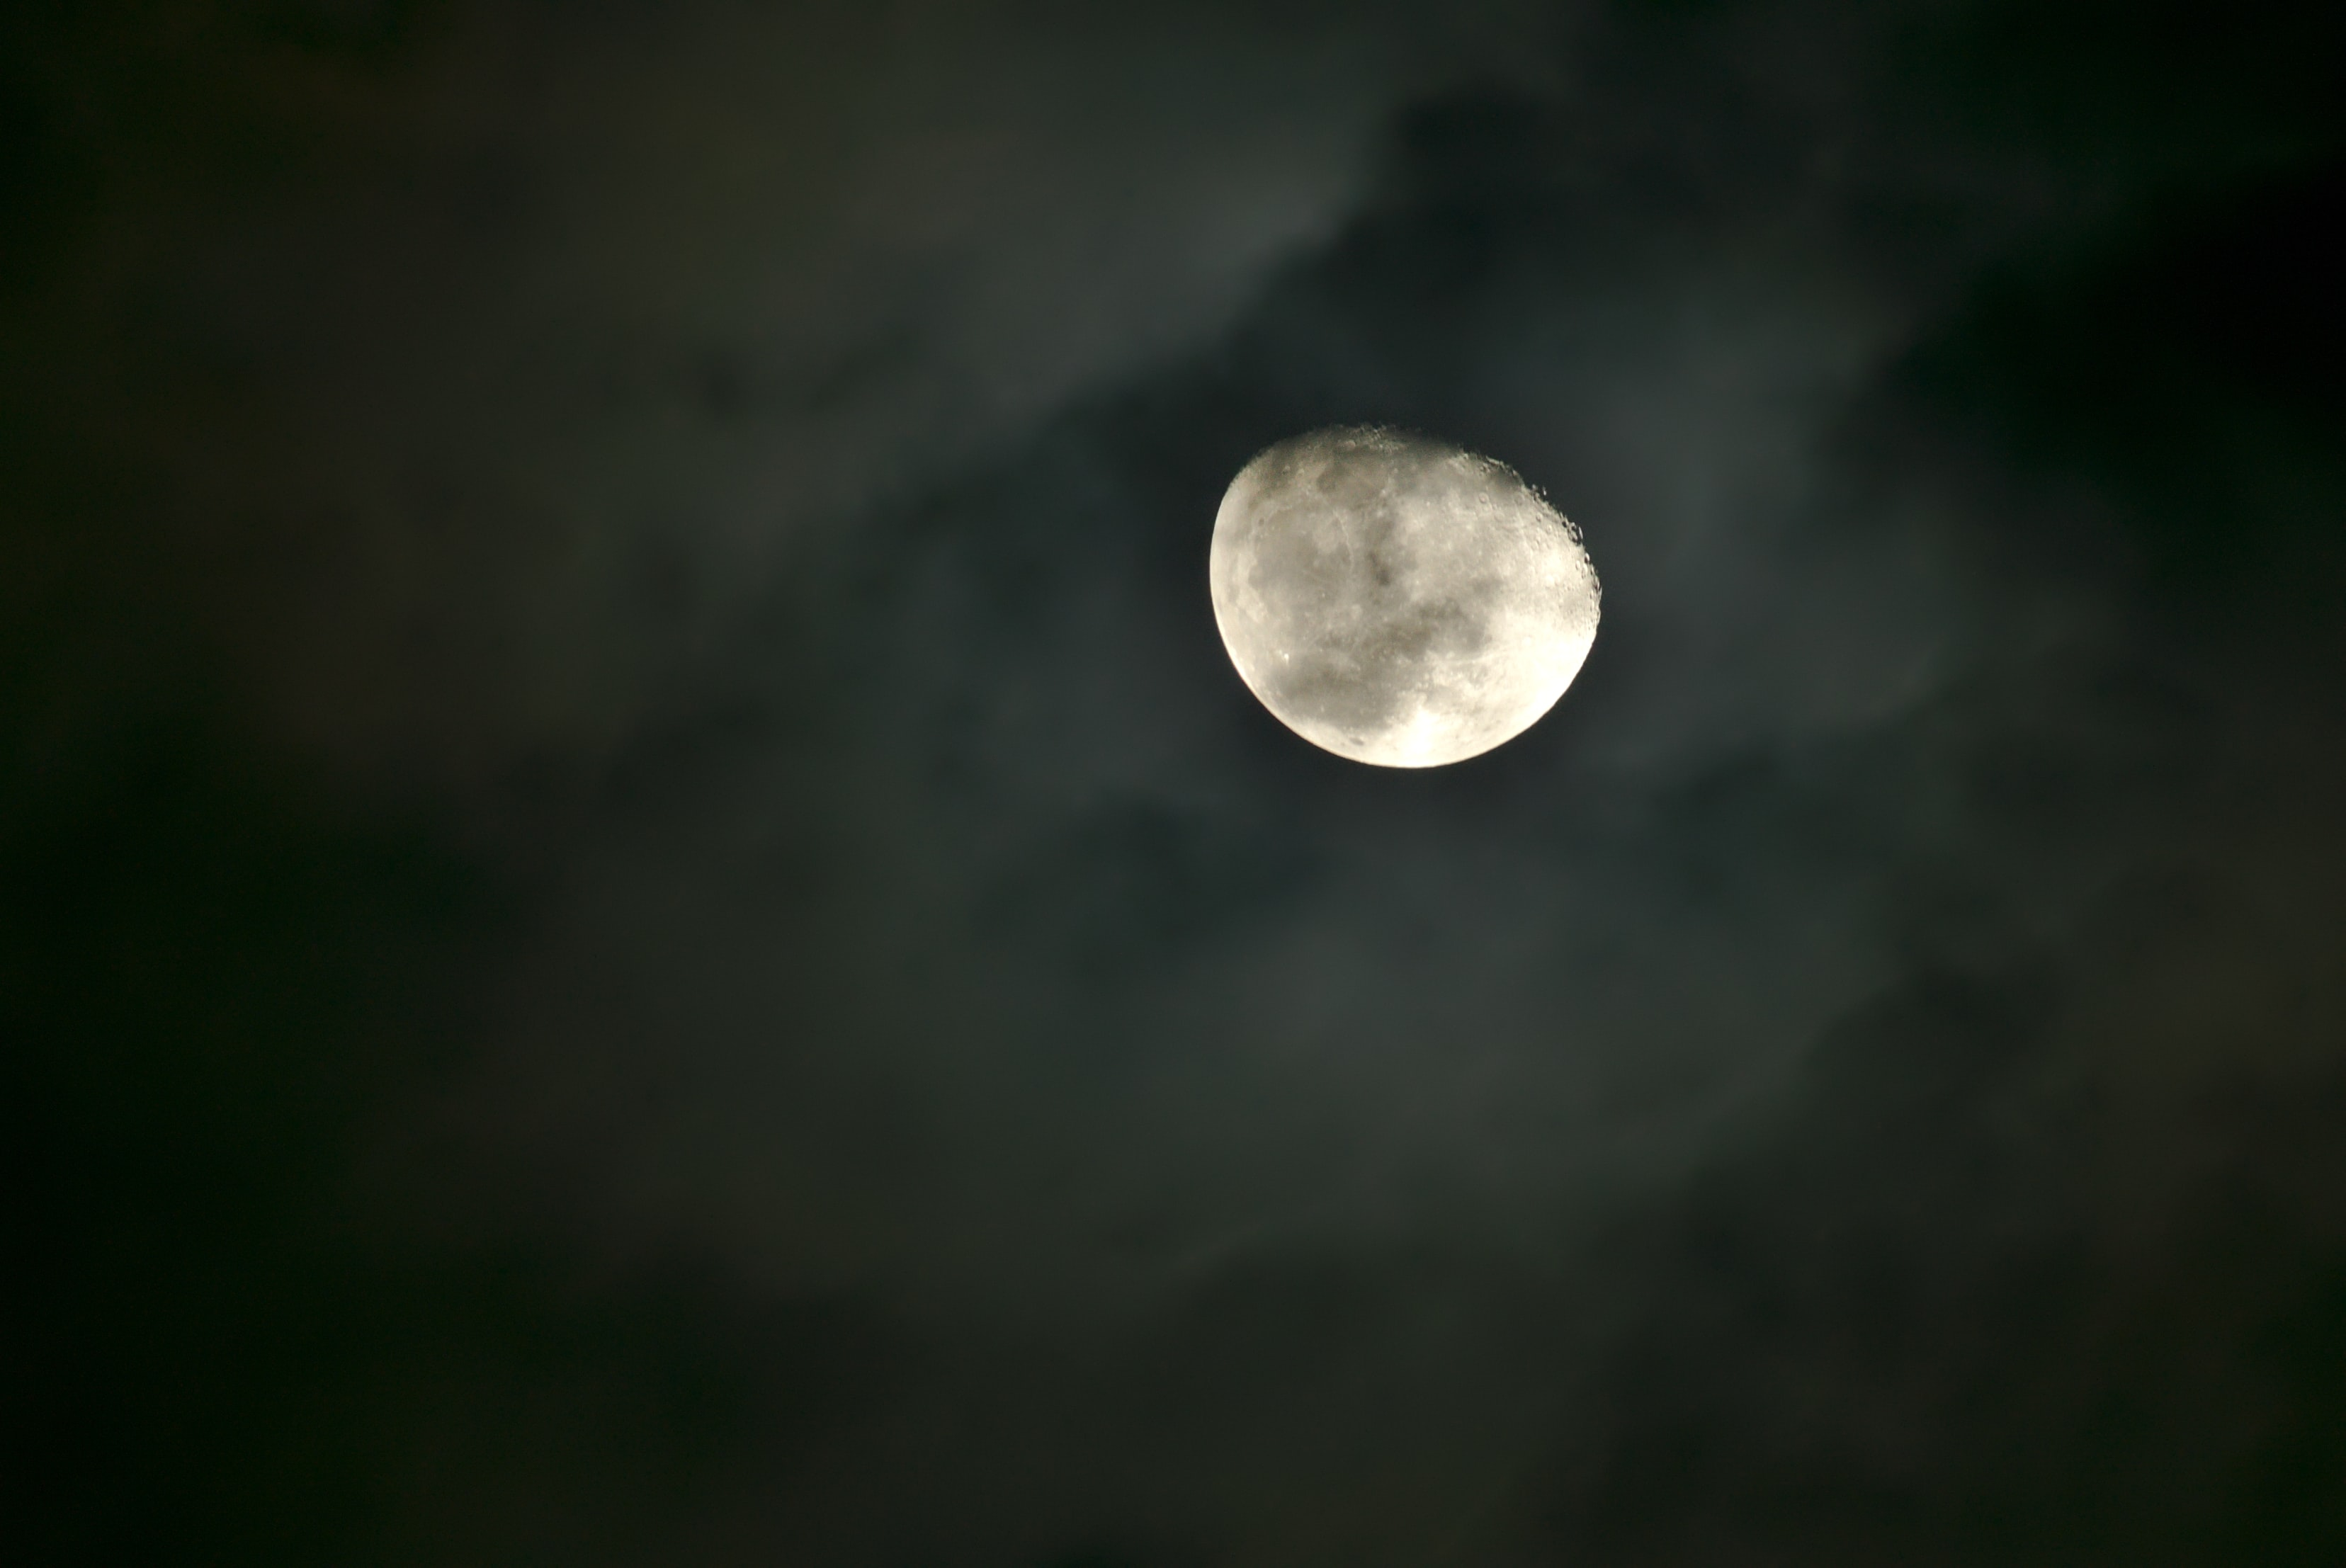 A bright moon in the night sky surrounded by wispy clouds